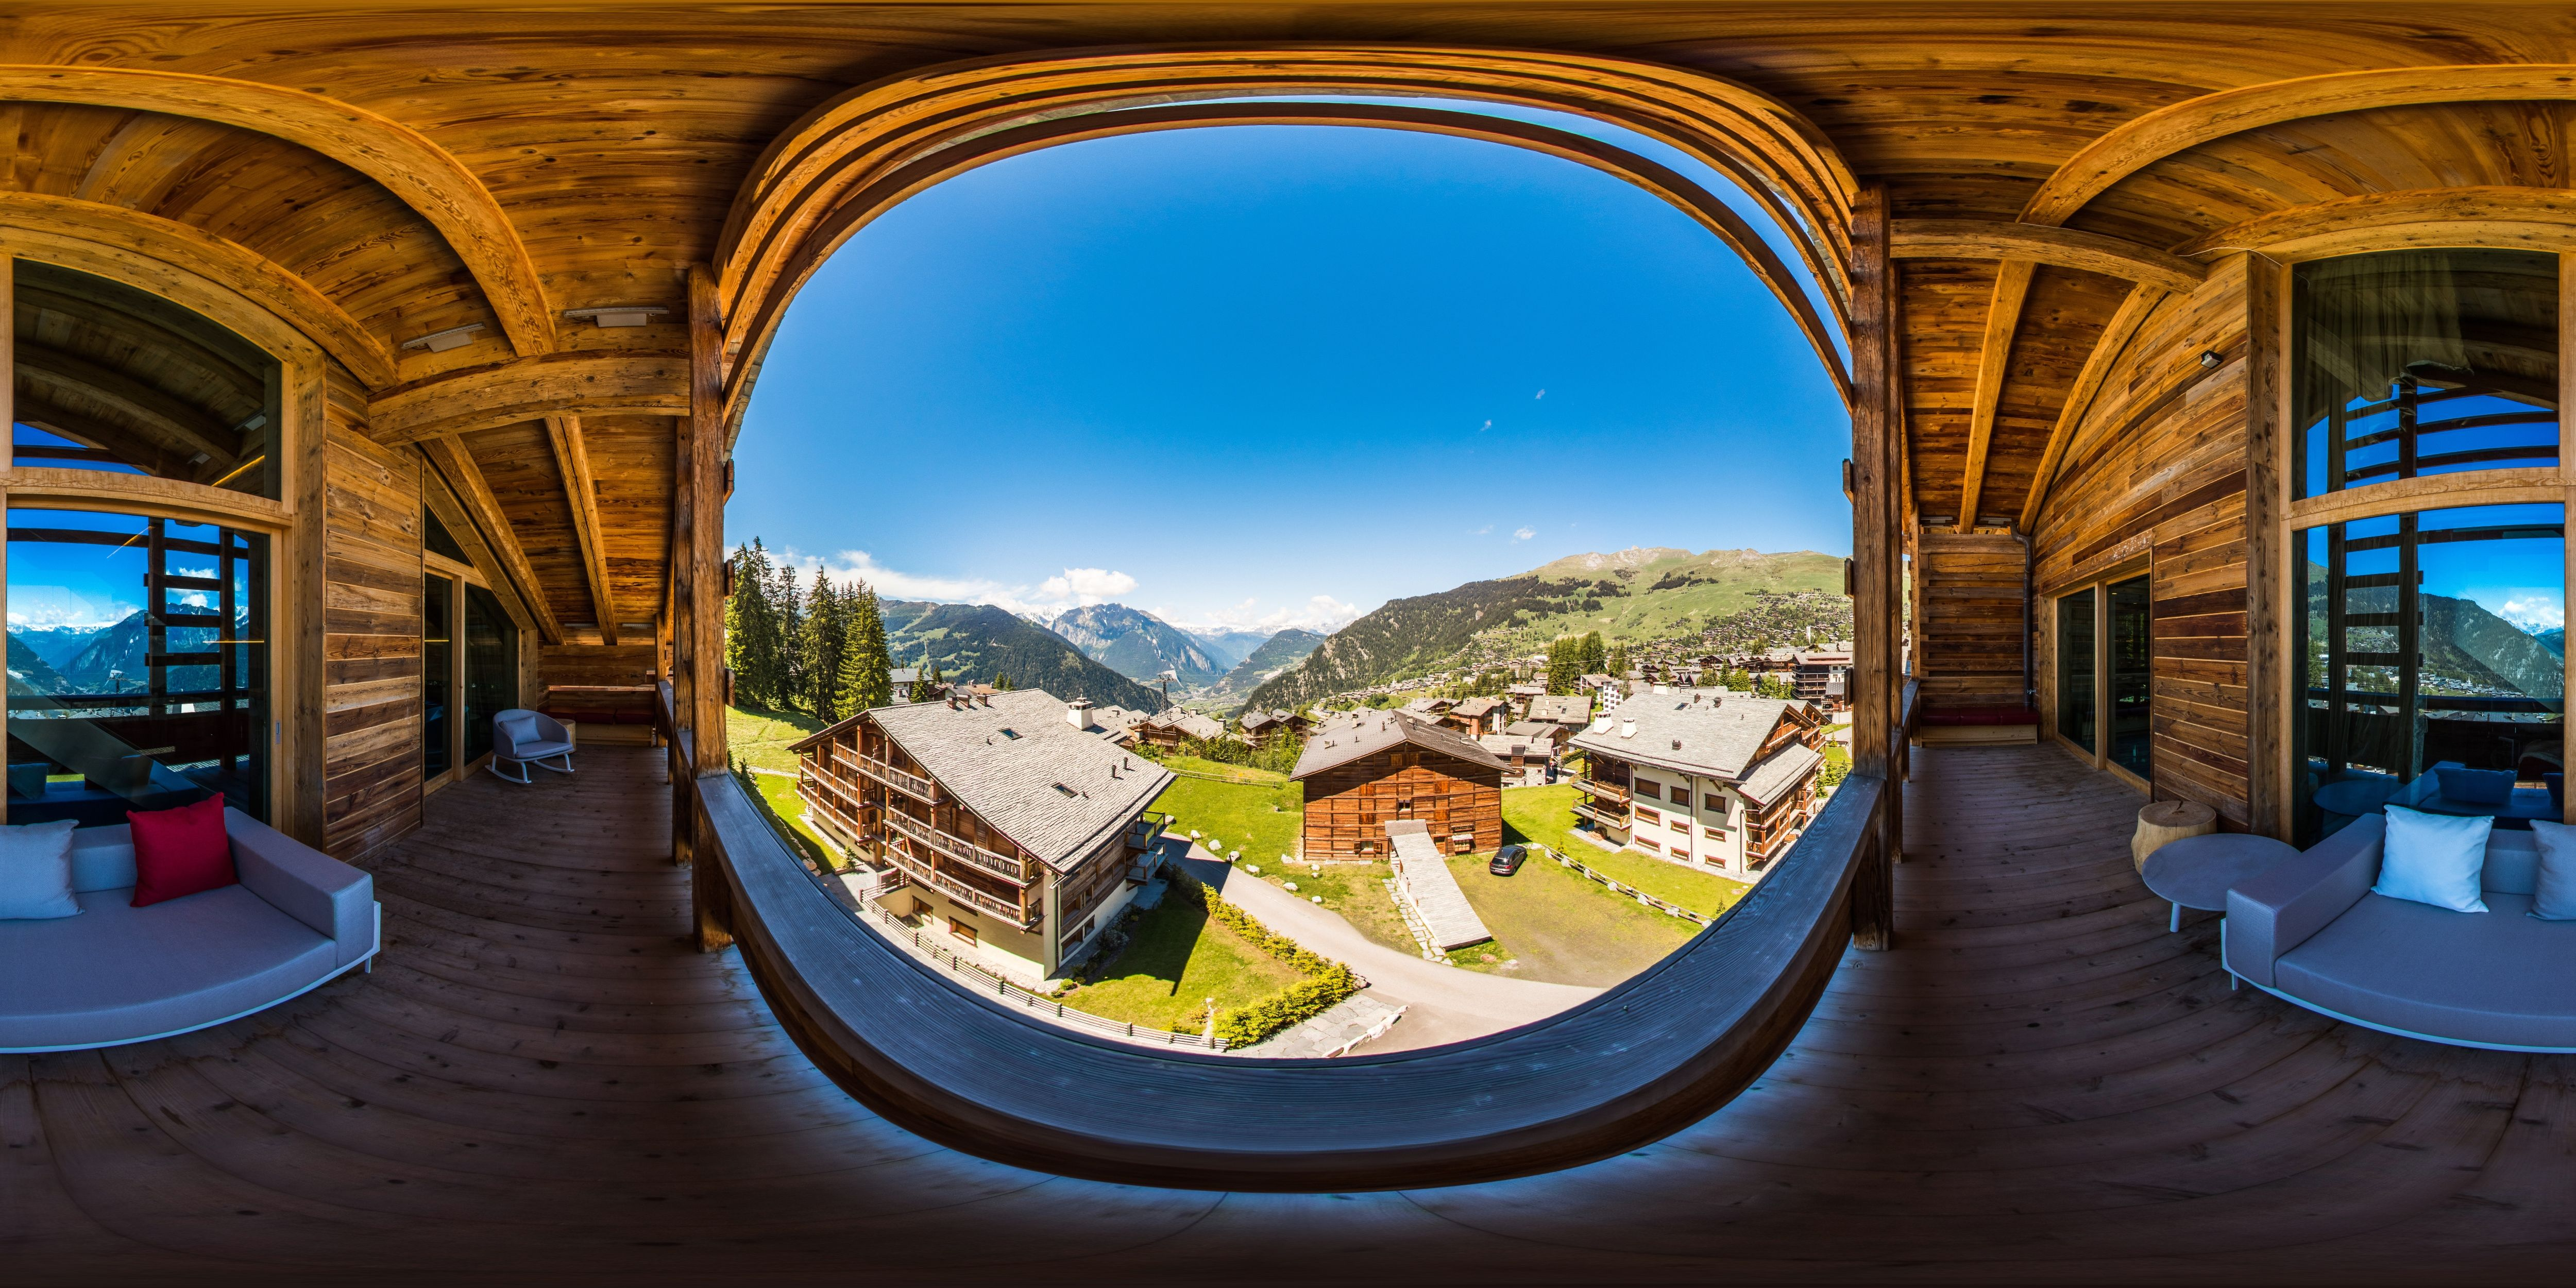 Hotels in Swiss Alps